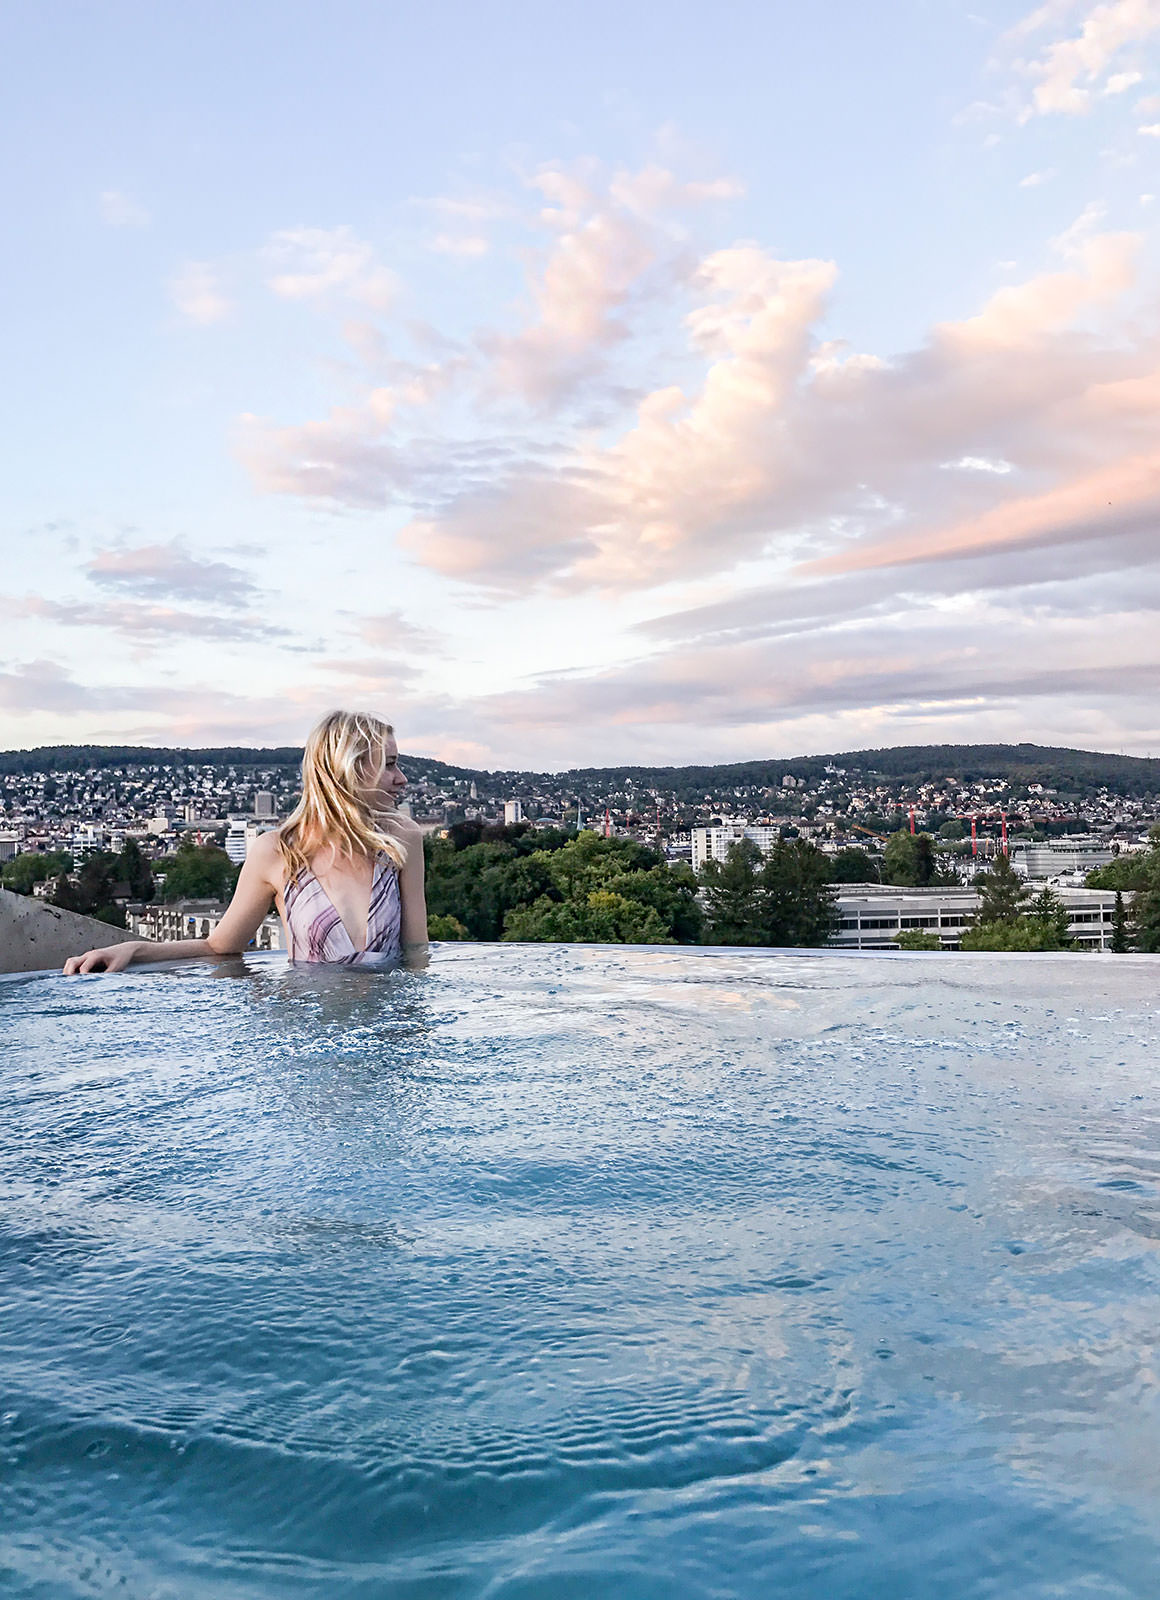 Our Relaxing Stay at B2 Boutique Hotel + Spa in Zurich